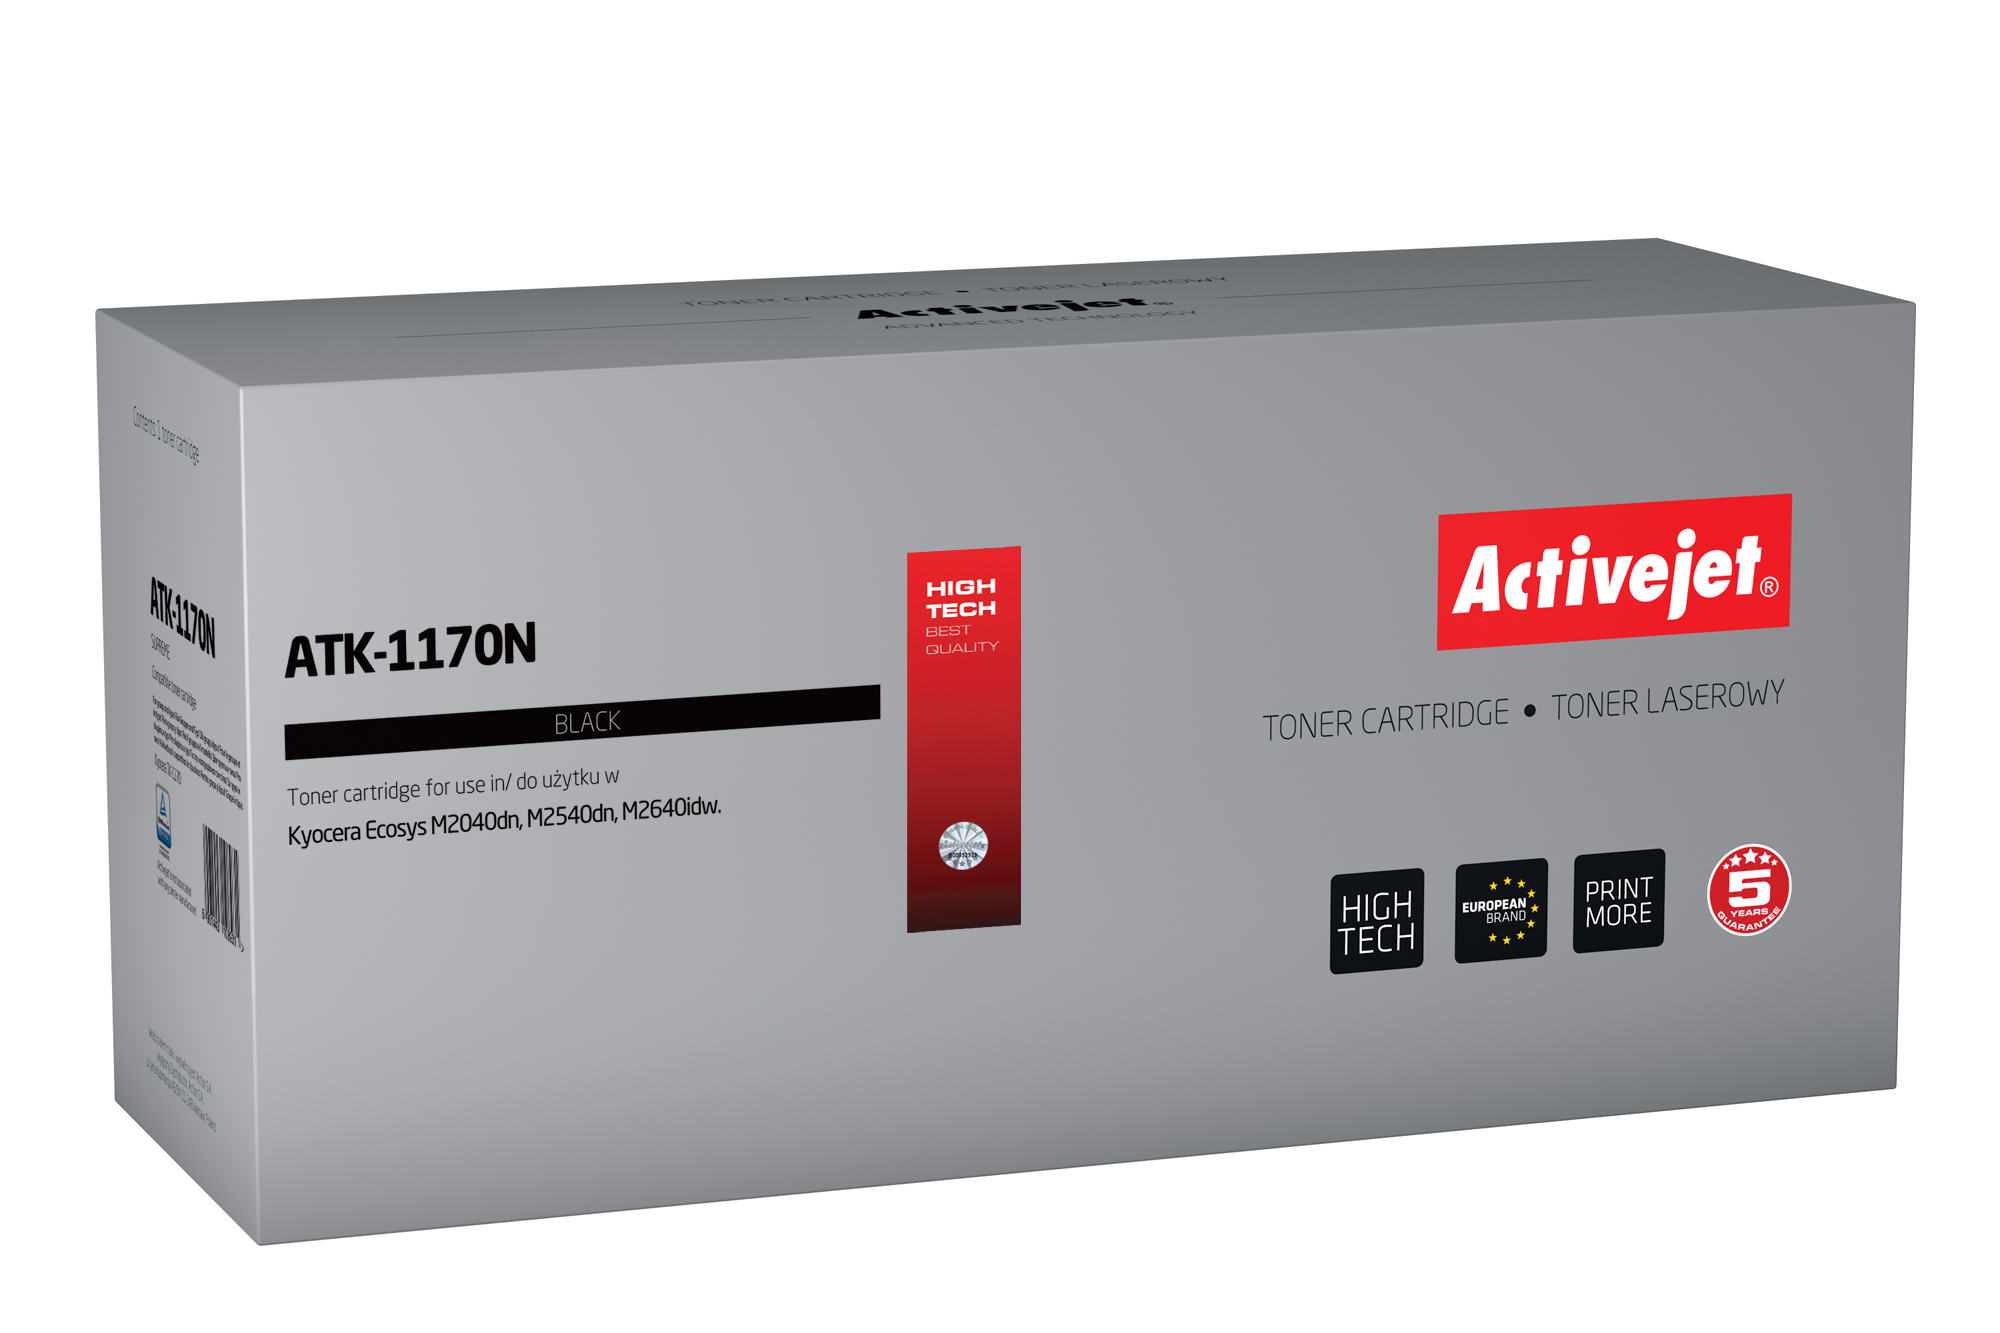 Activejet toner do Kyocera TK-1170 new ATK-1170N